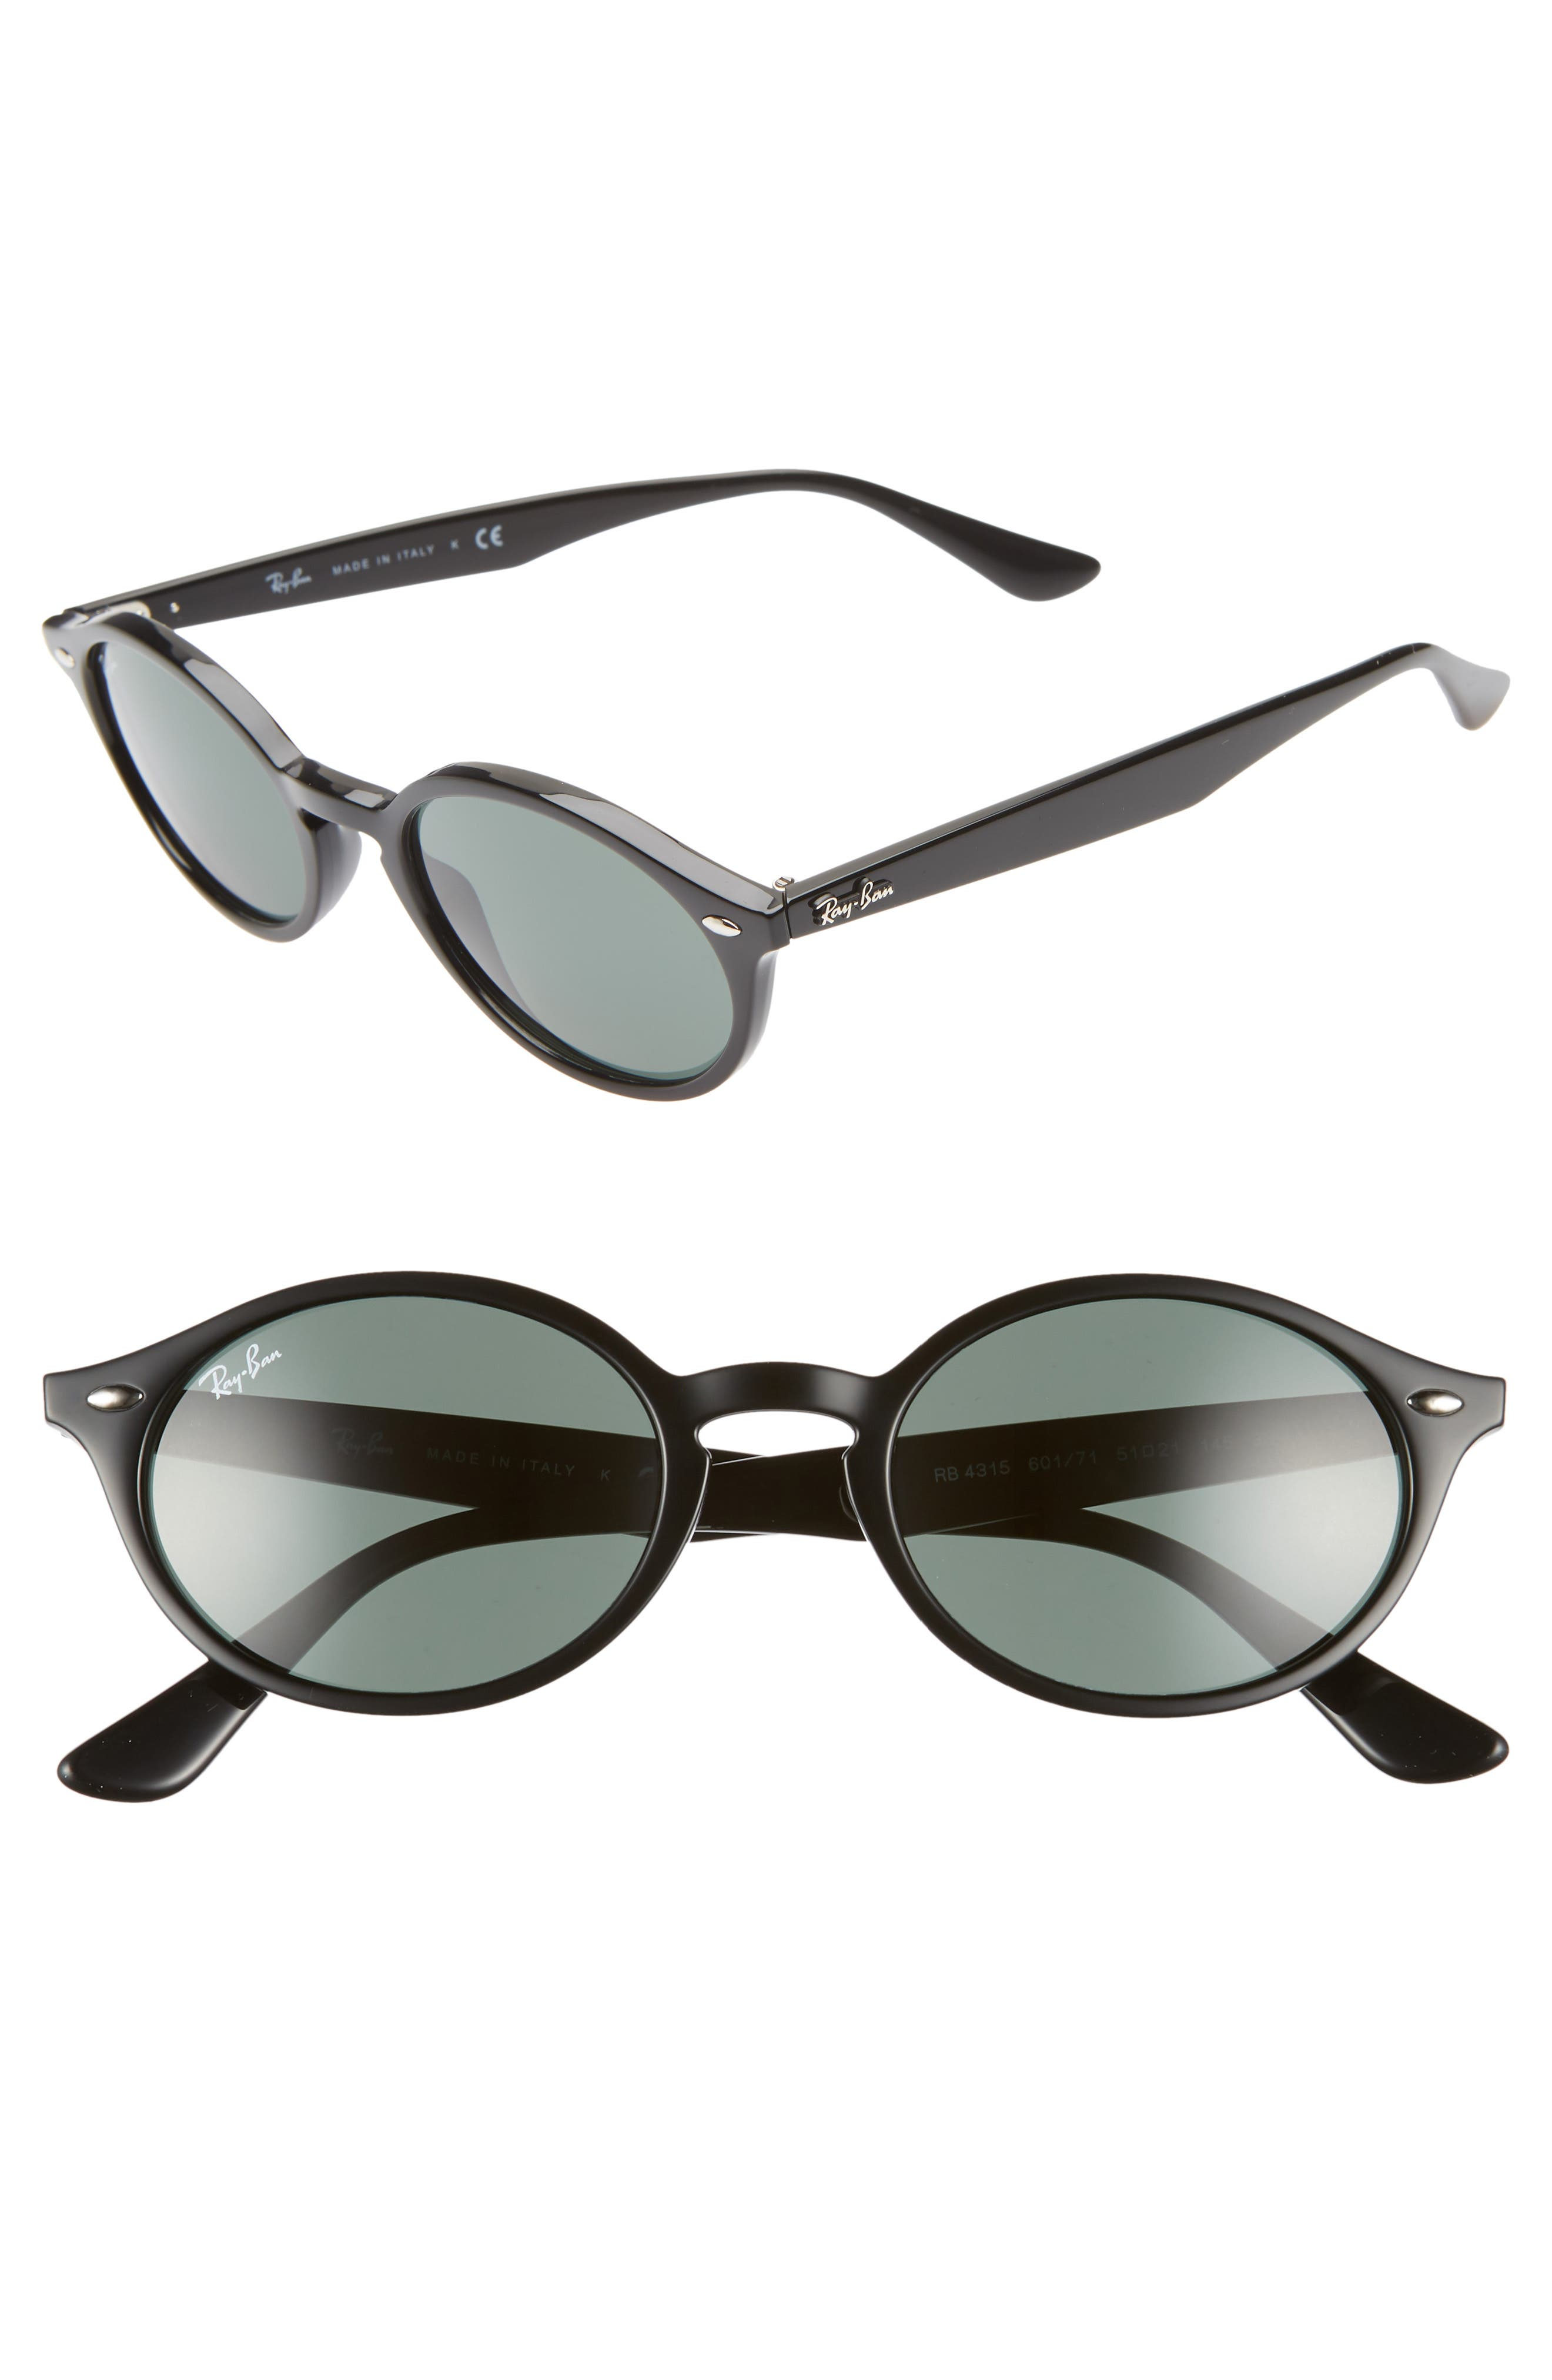 Ray-Ban 51Mm Oval Sunglasses - Black/ Green Solid